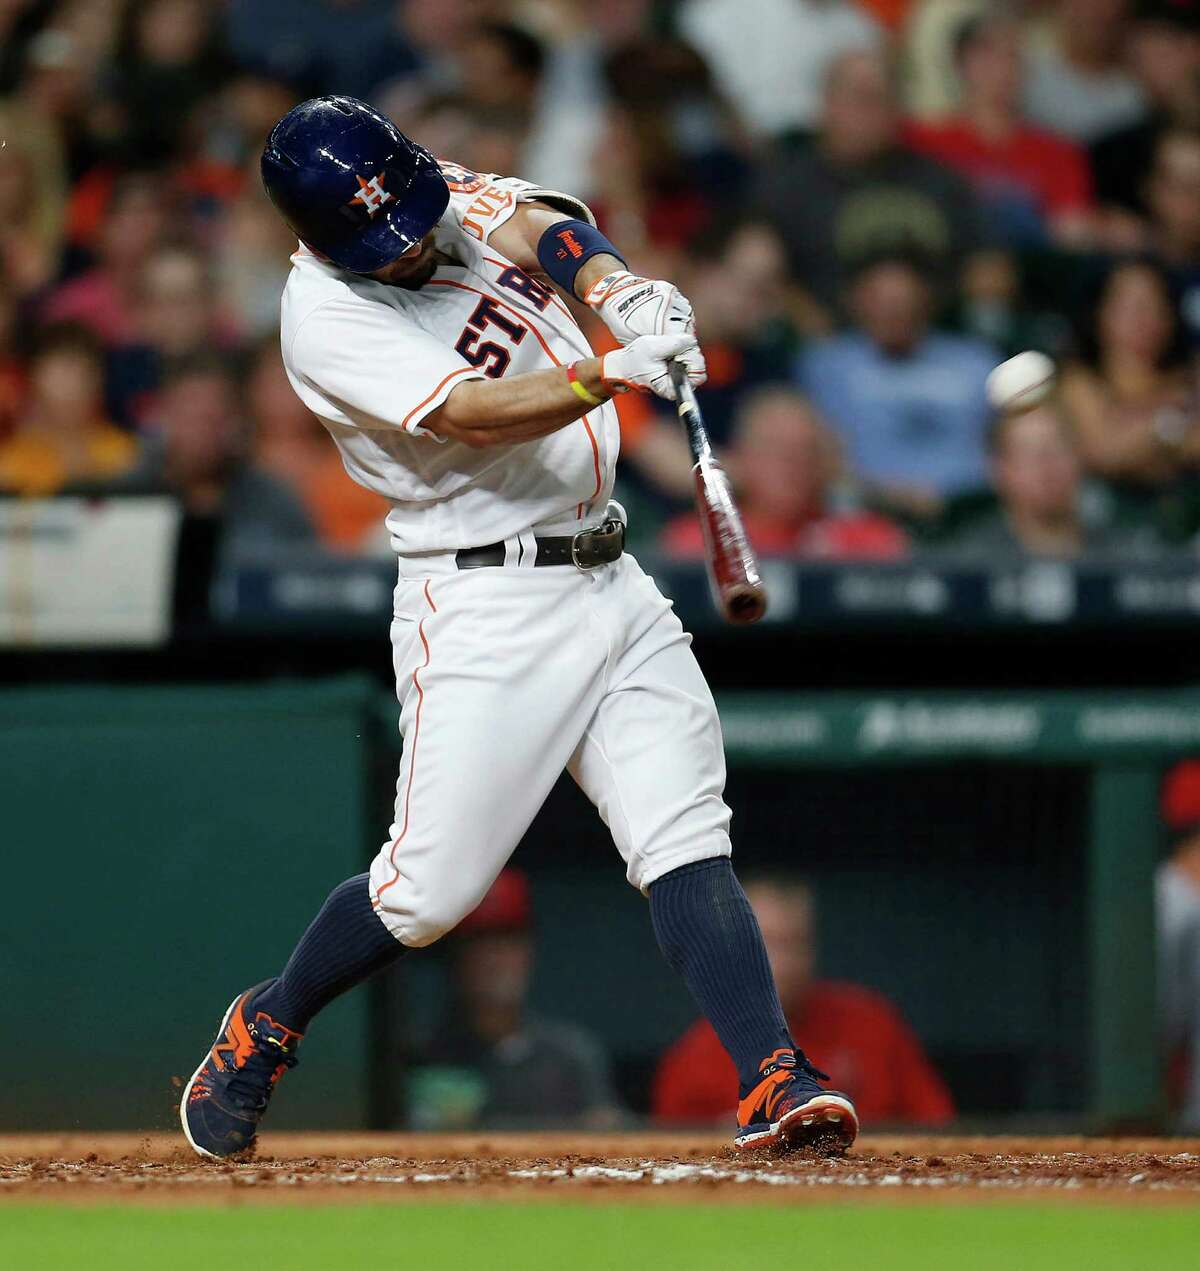 June 20: Astros 10, Angel 7 Houston Astros second baseman Jose Altuve (27) hits a home run during the fourth inning of an MLB baseball game at Minute Maid Park, Monday, June 20, 2016, in Houston.